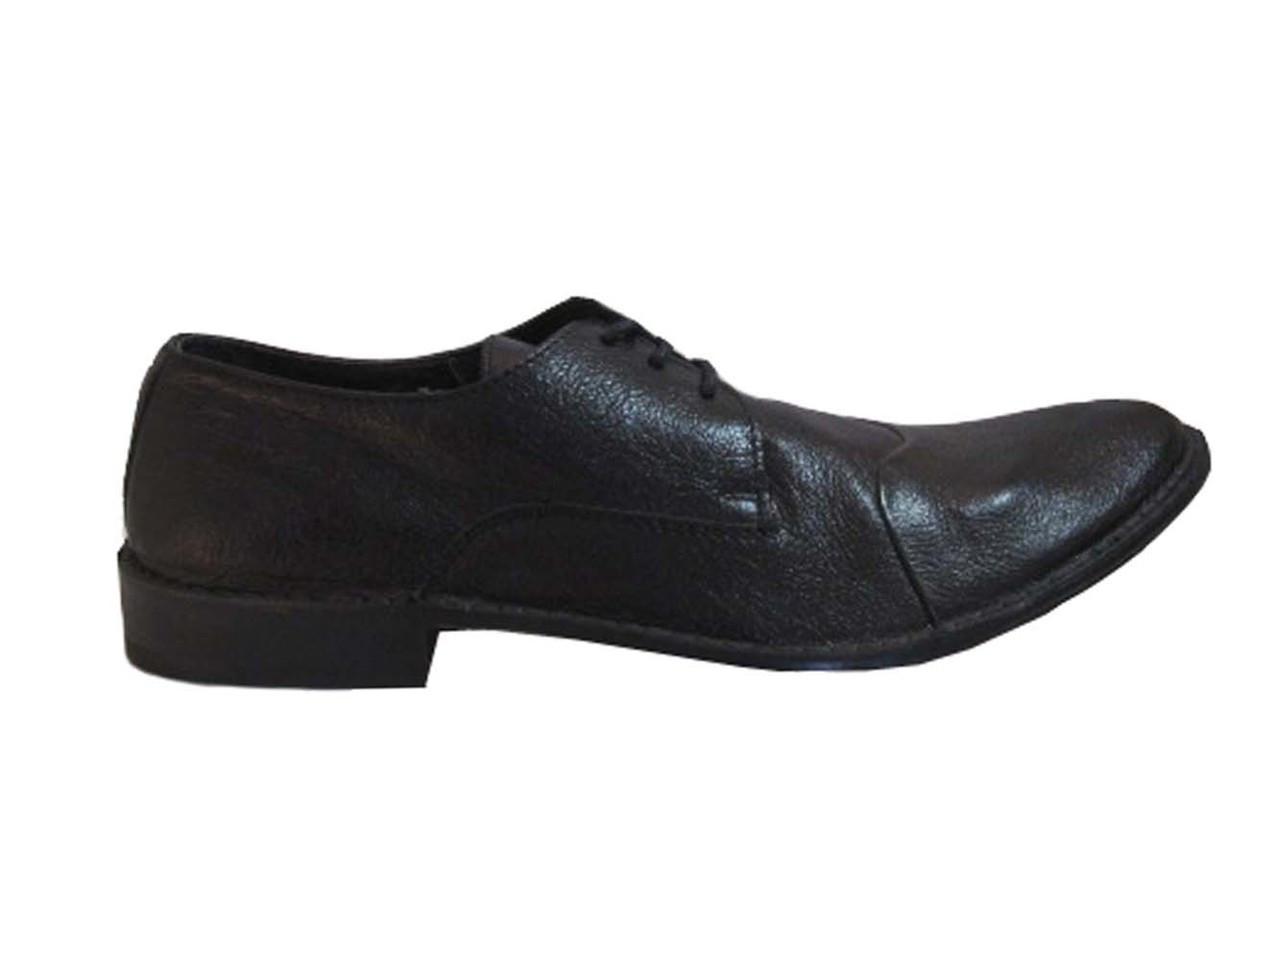 Men's Italian Davinci casual Leather Lace up Shoes 8129,Available in black, red,off white